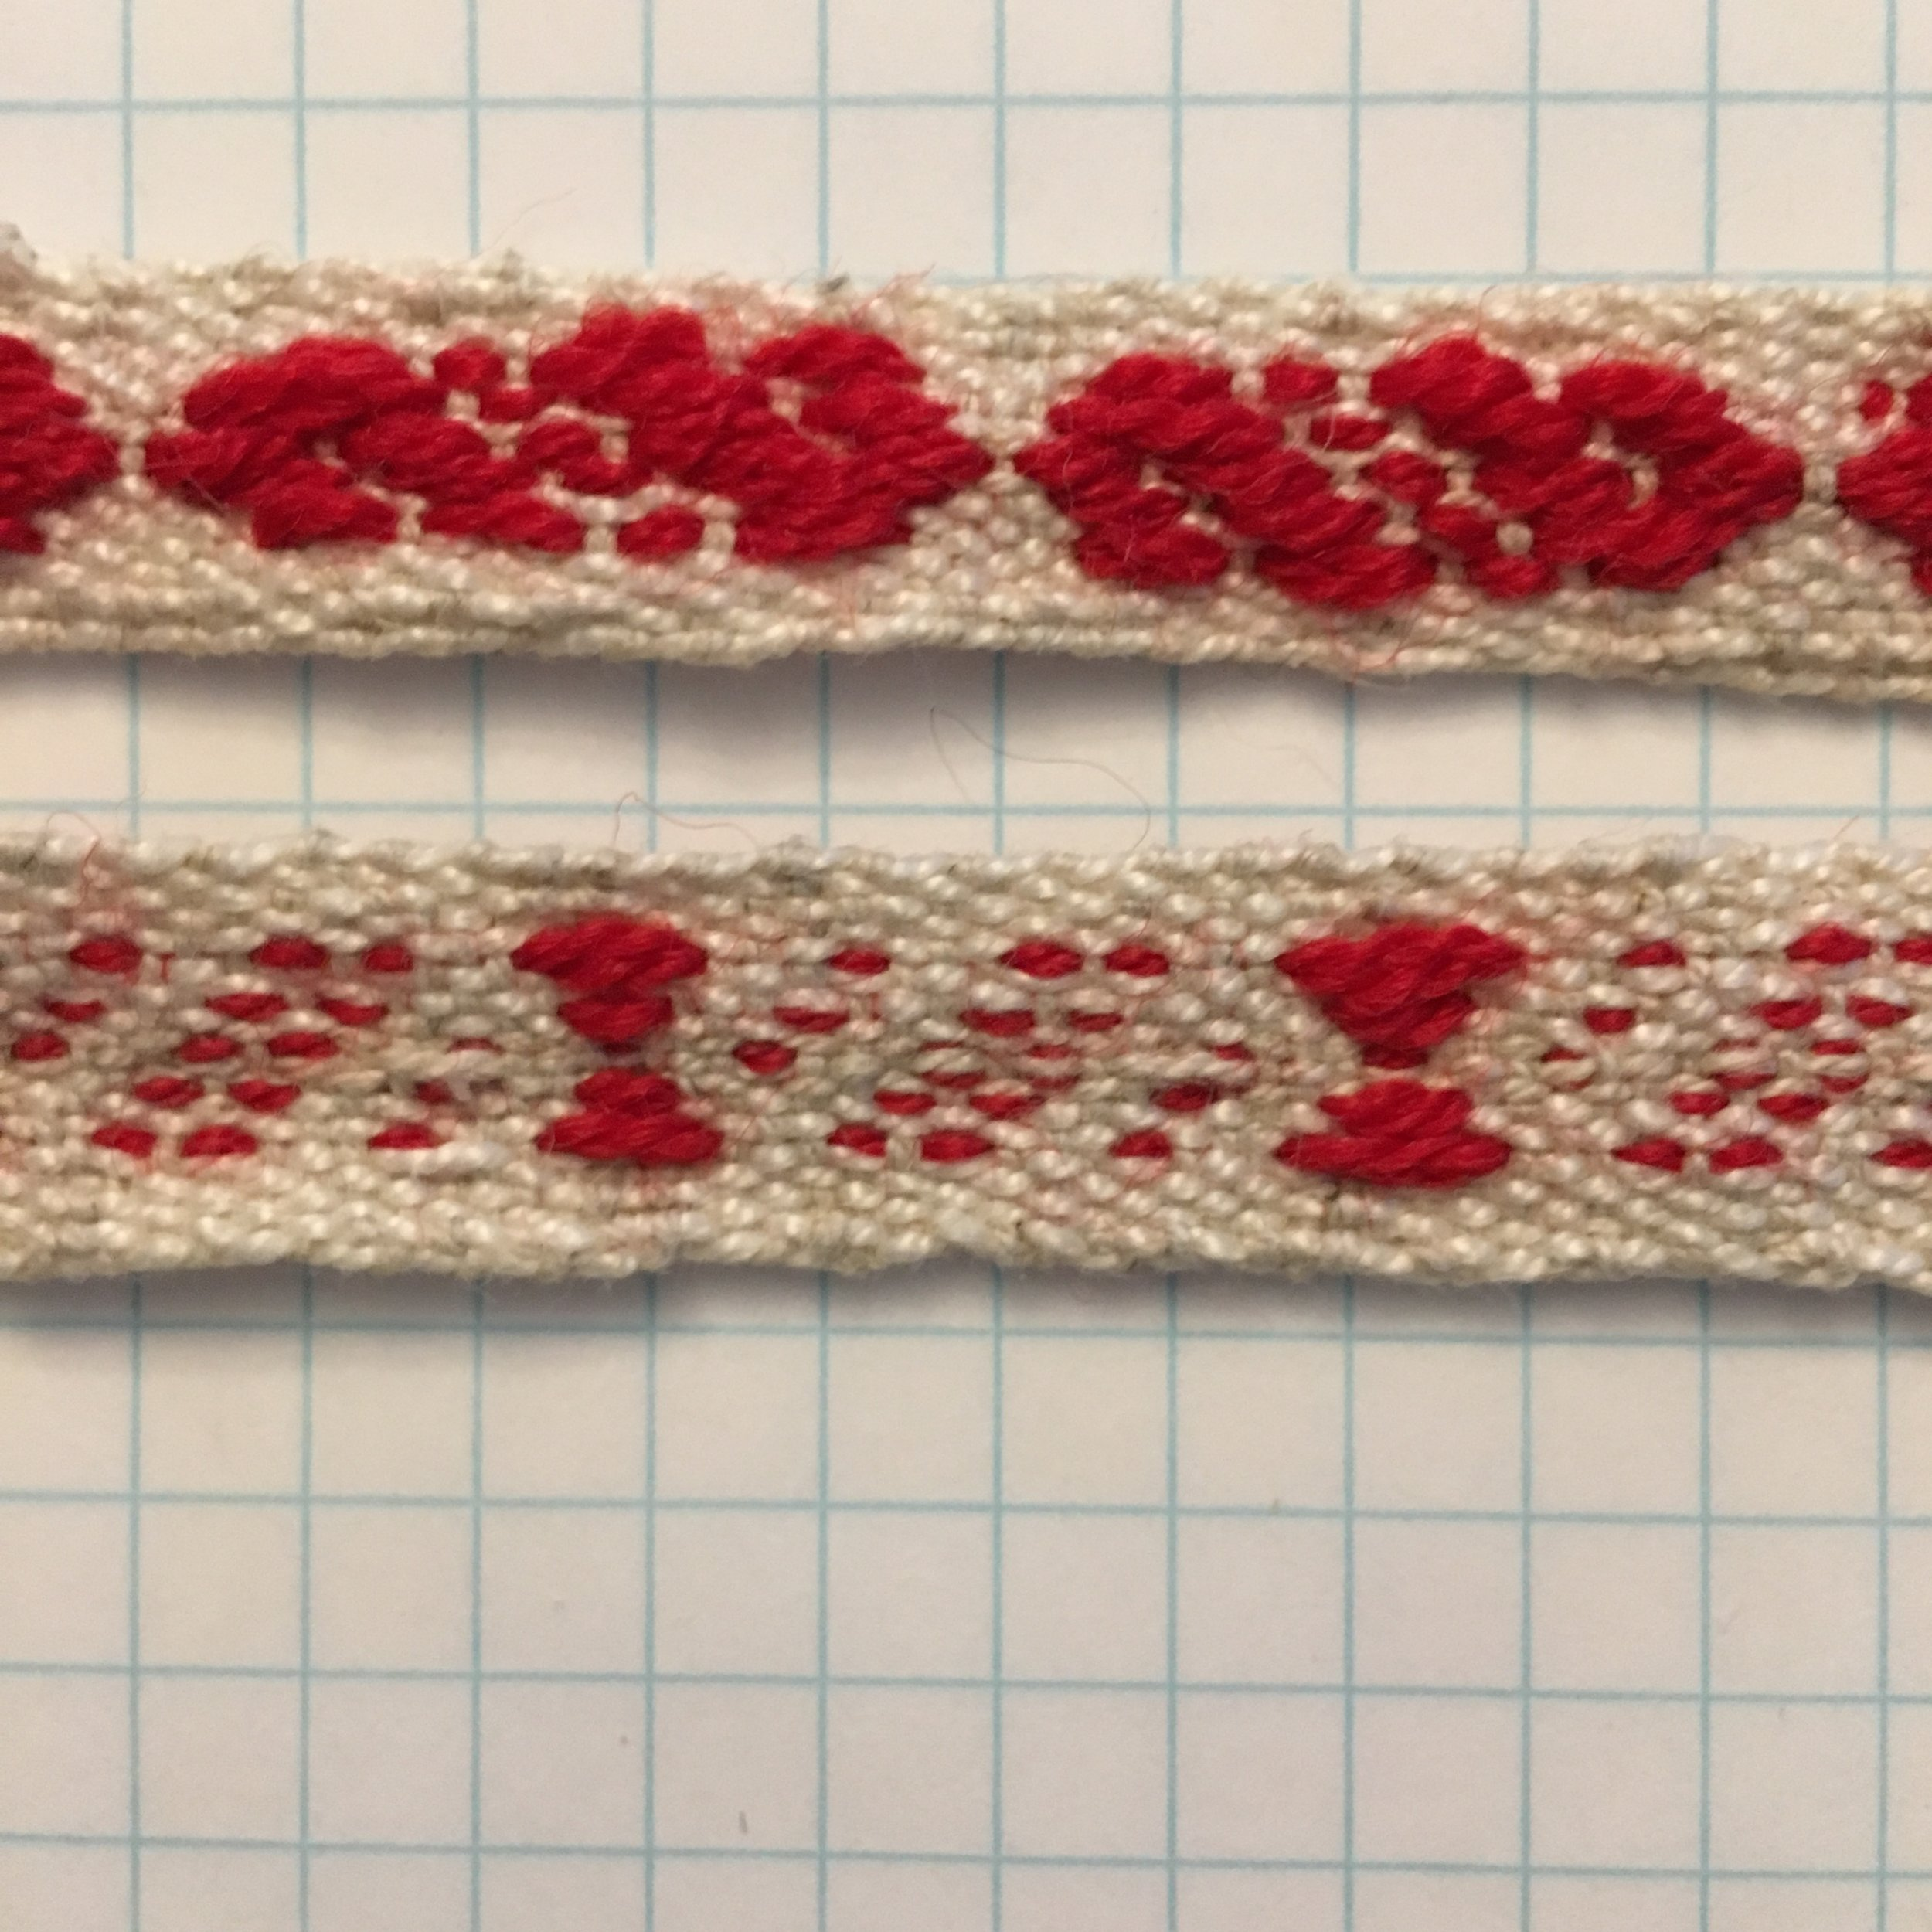 Band weaving with Baltic pattern, red wool and cottolin